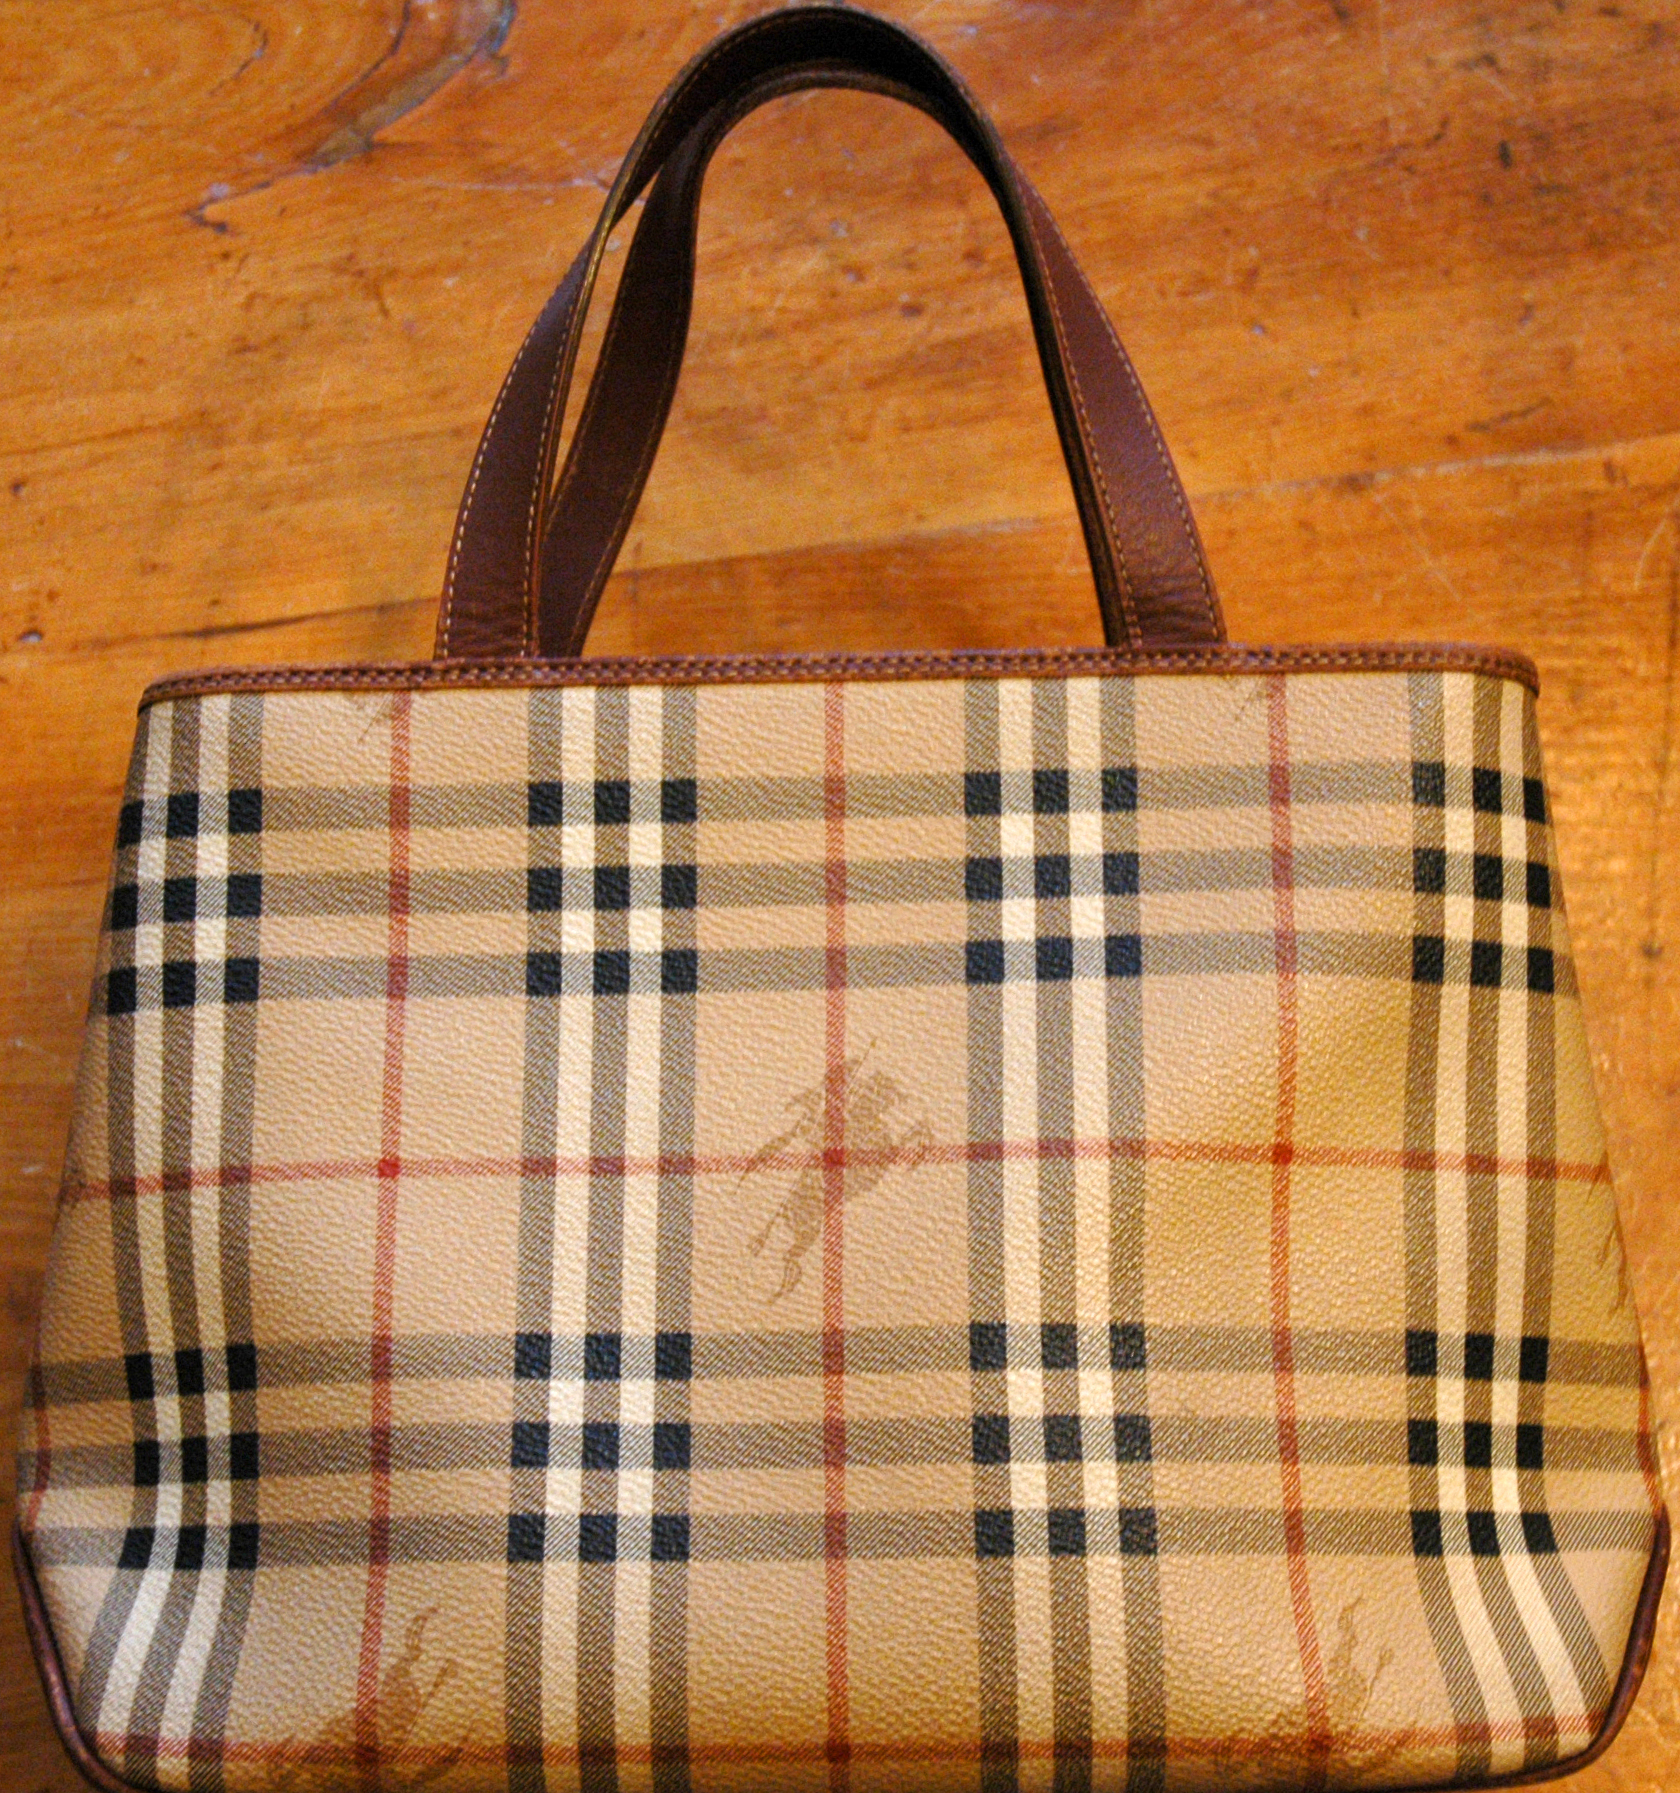 File:Burberry handbag.jpg